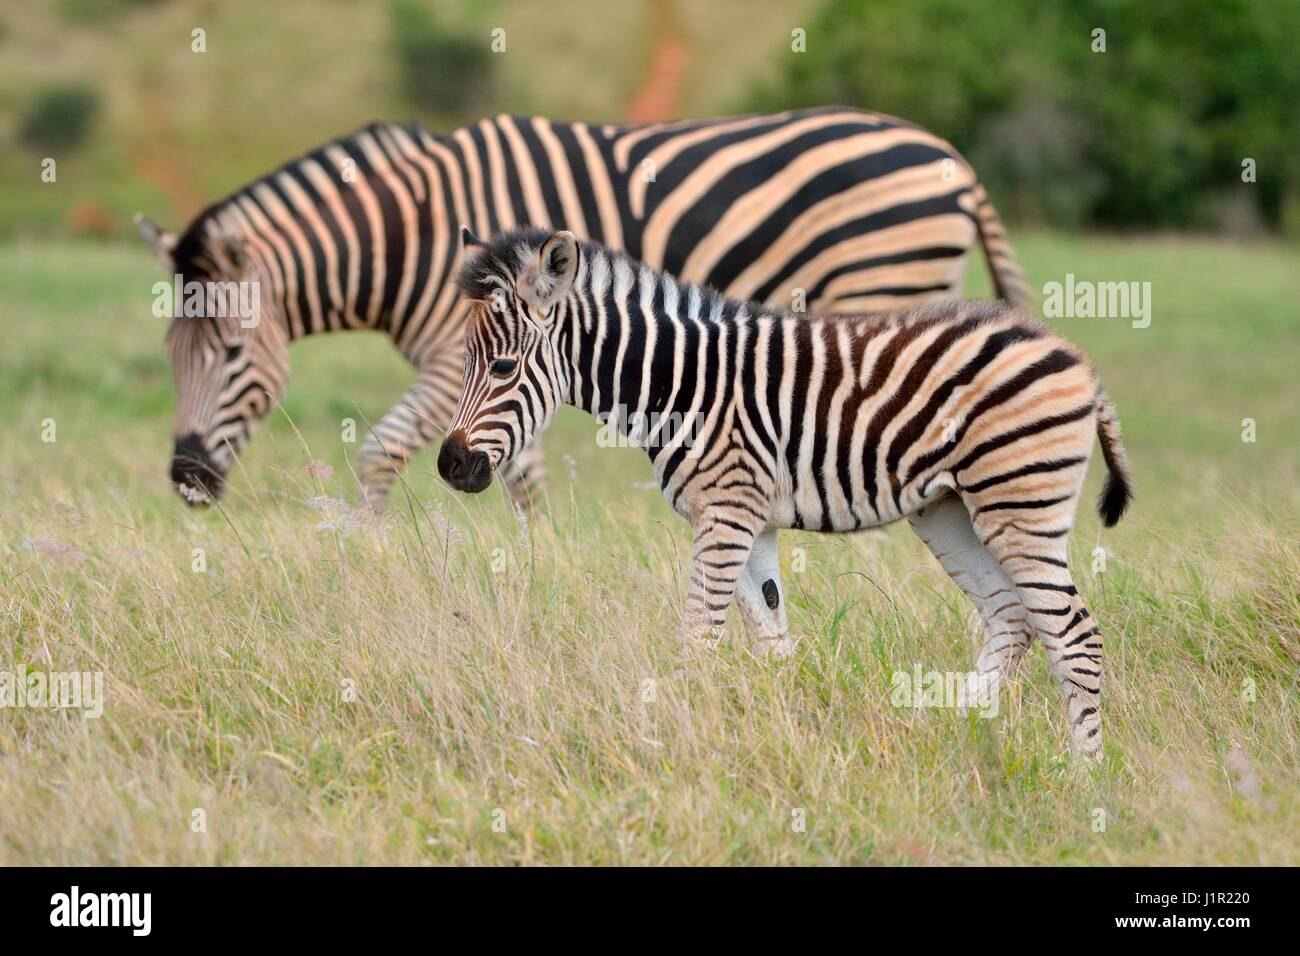 Burchell's zebras (Equus quagga burchellii), foal walking on grass, Addo National Park, Eastern Cape, South - Stock Image